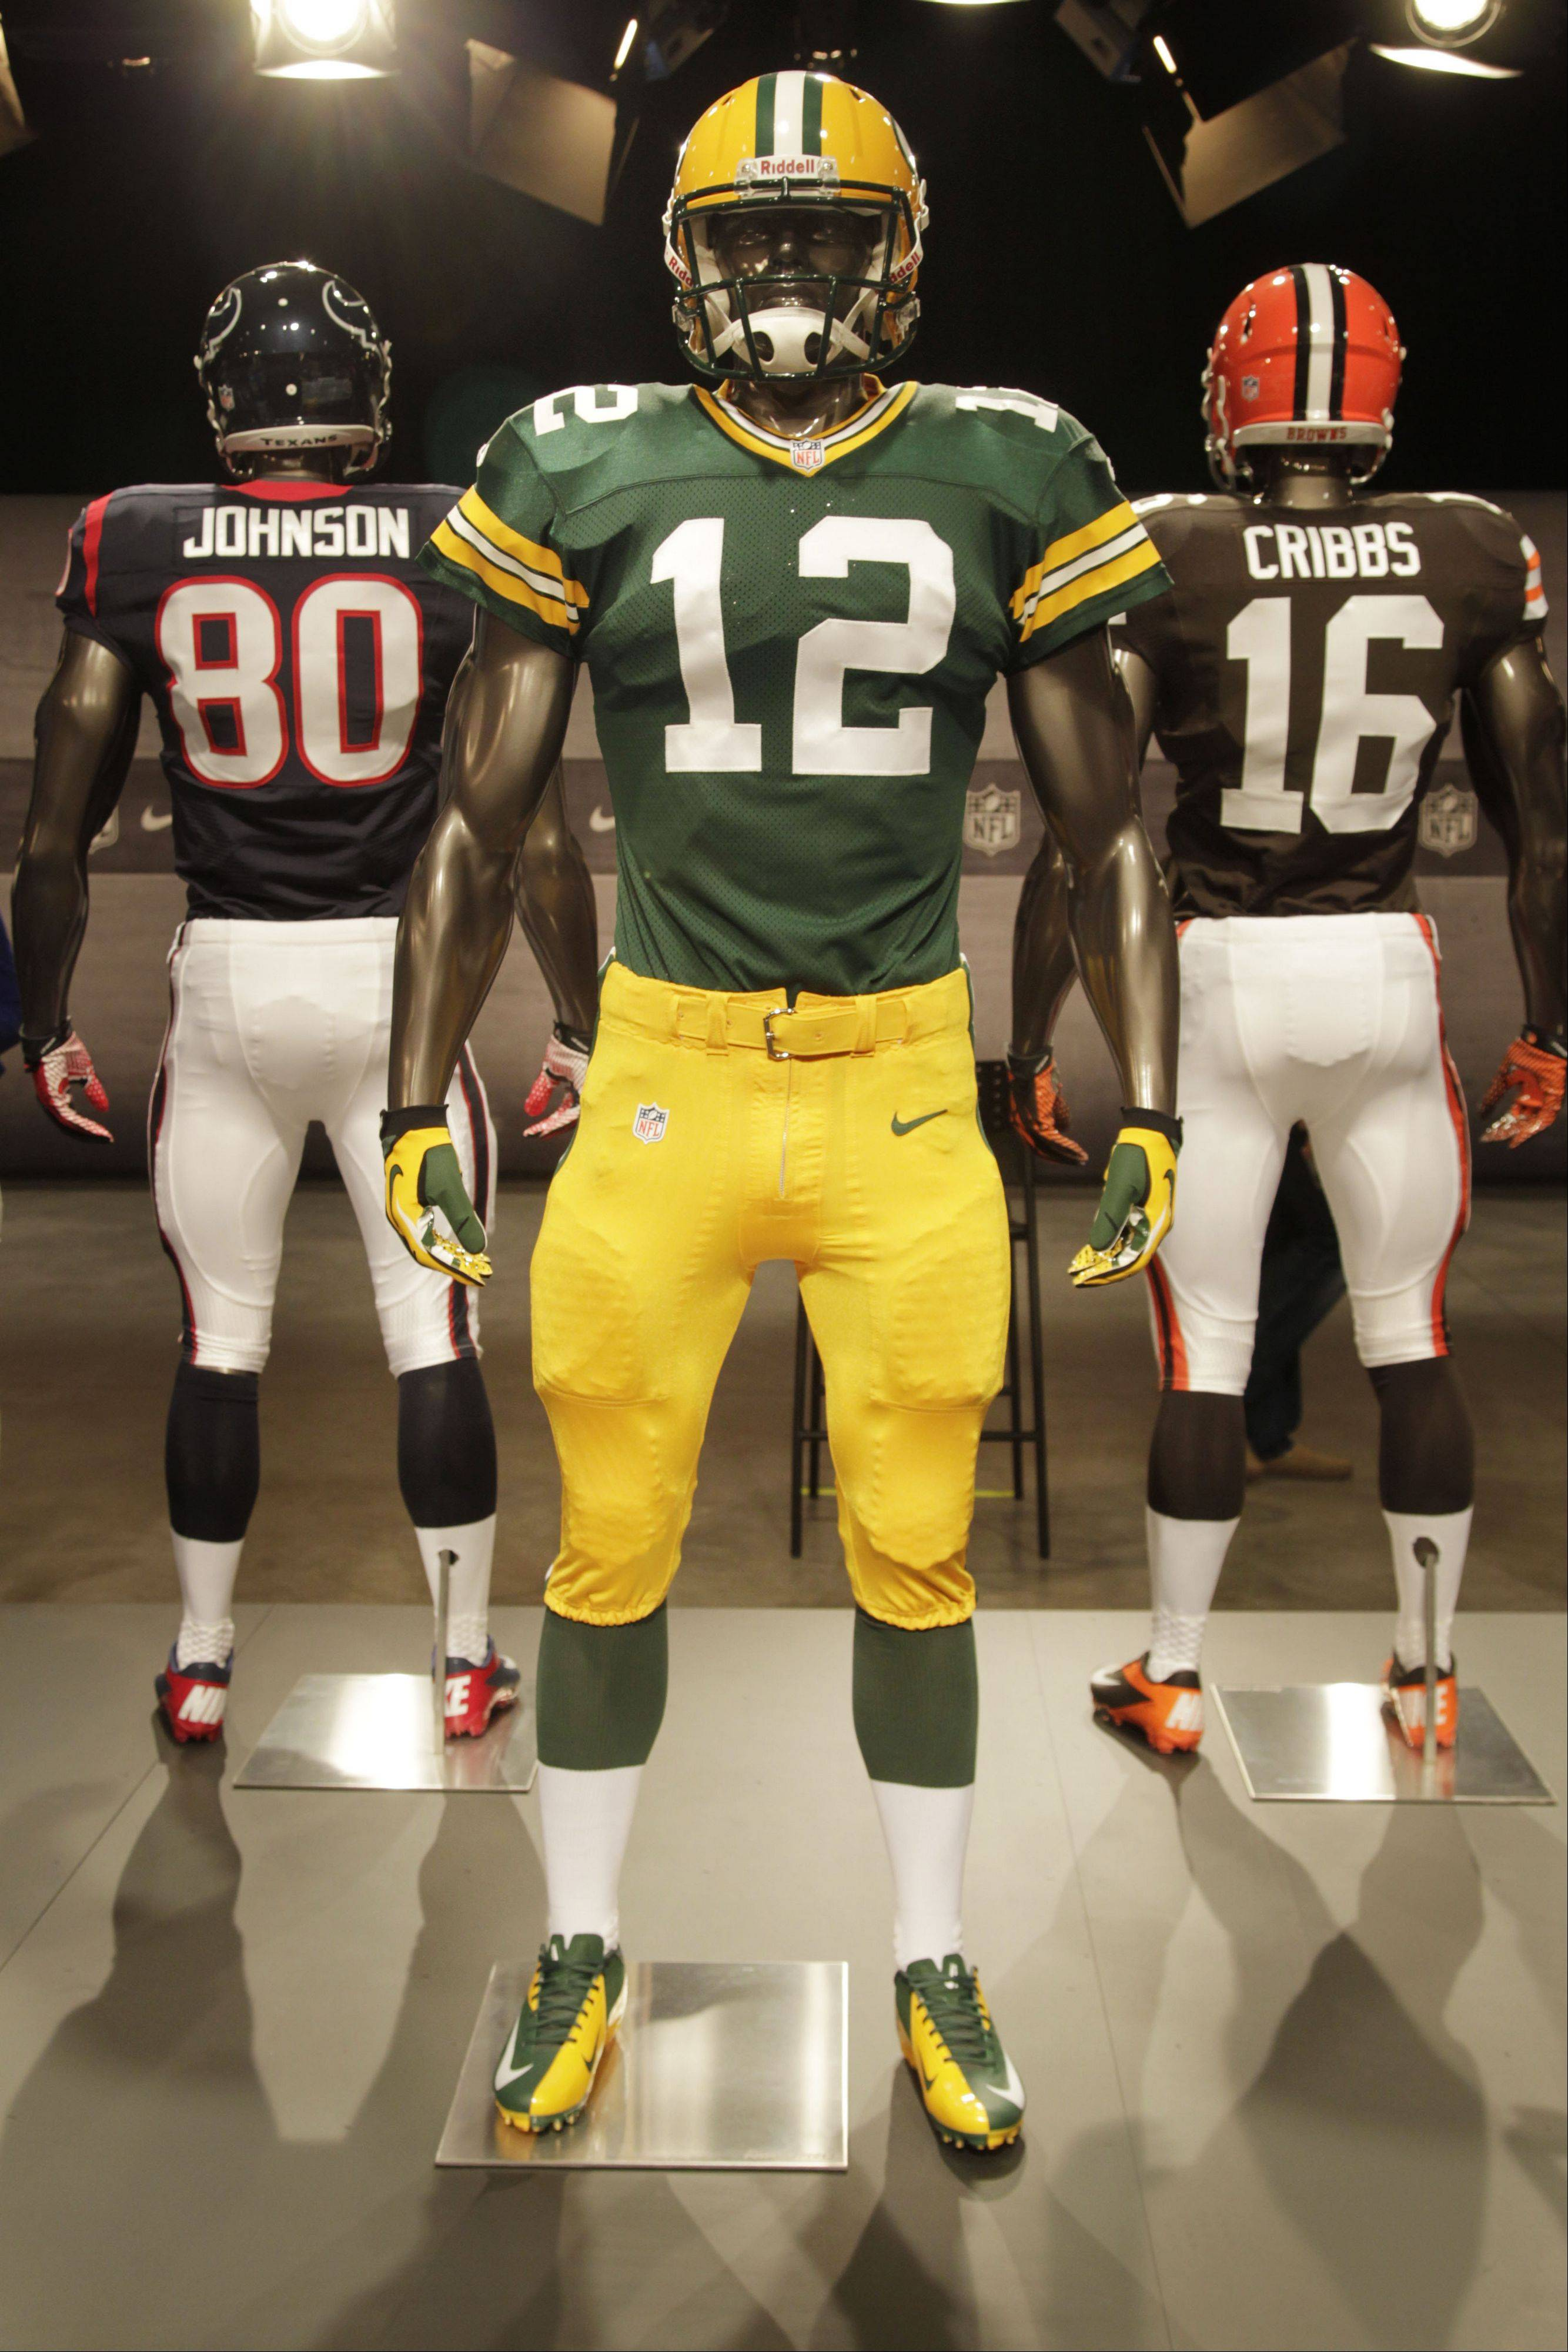 The new Green Bay Packers uniform is displayed on a mannequin in New York, Tuesday, April 3, 2012. NFL has unveiled its new sleek uniforms designed by Nike. While most of the new uniforms are not very different visually, they all are made with new technology that make them lighter, dryer and more comfortable.